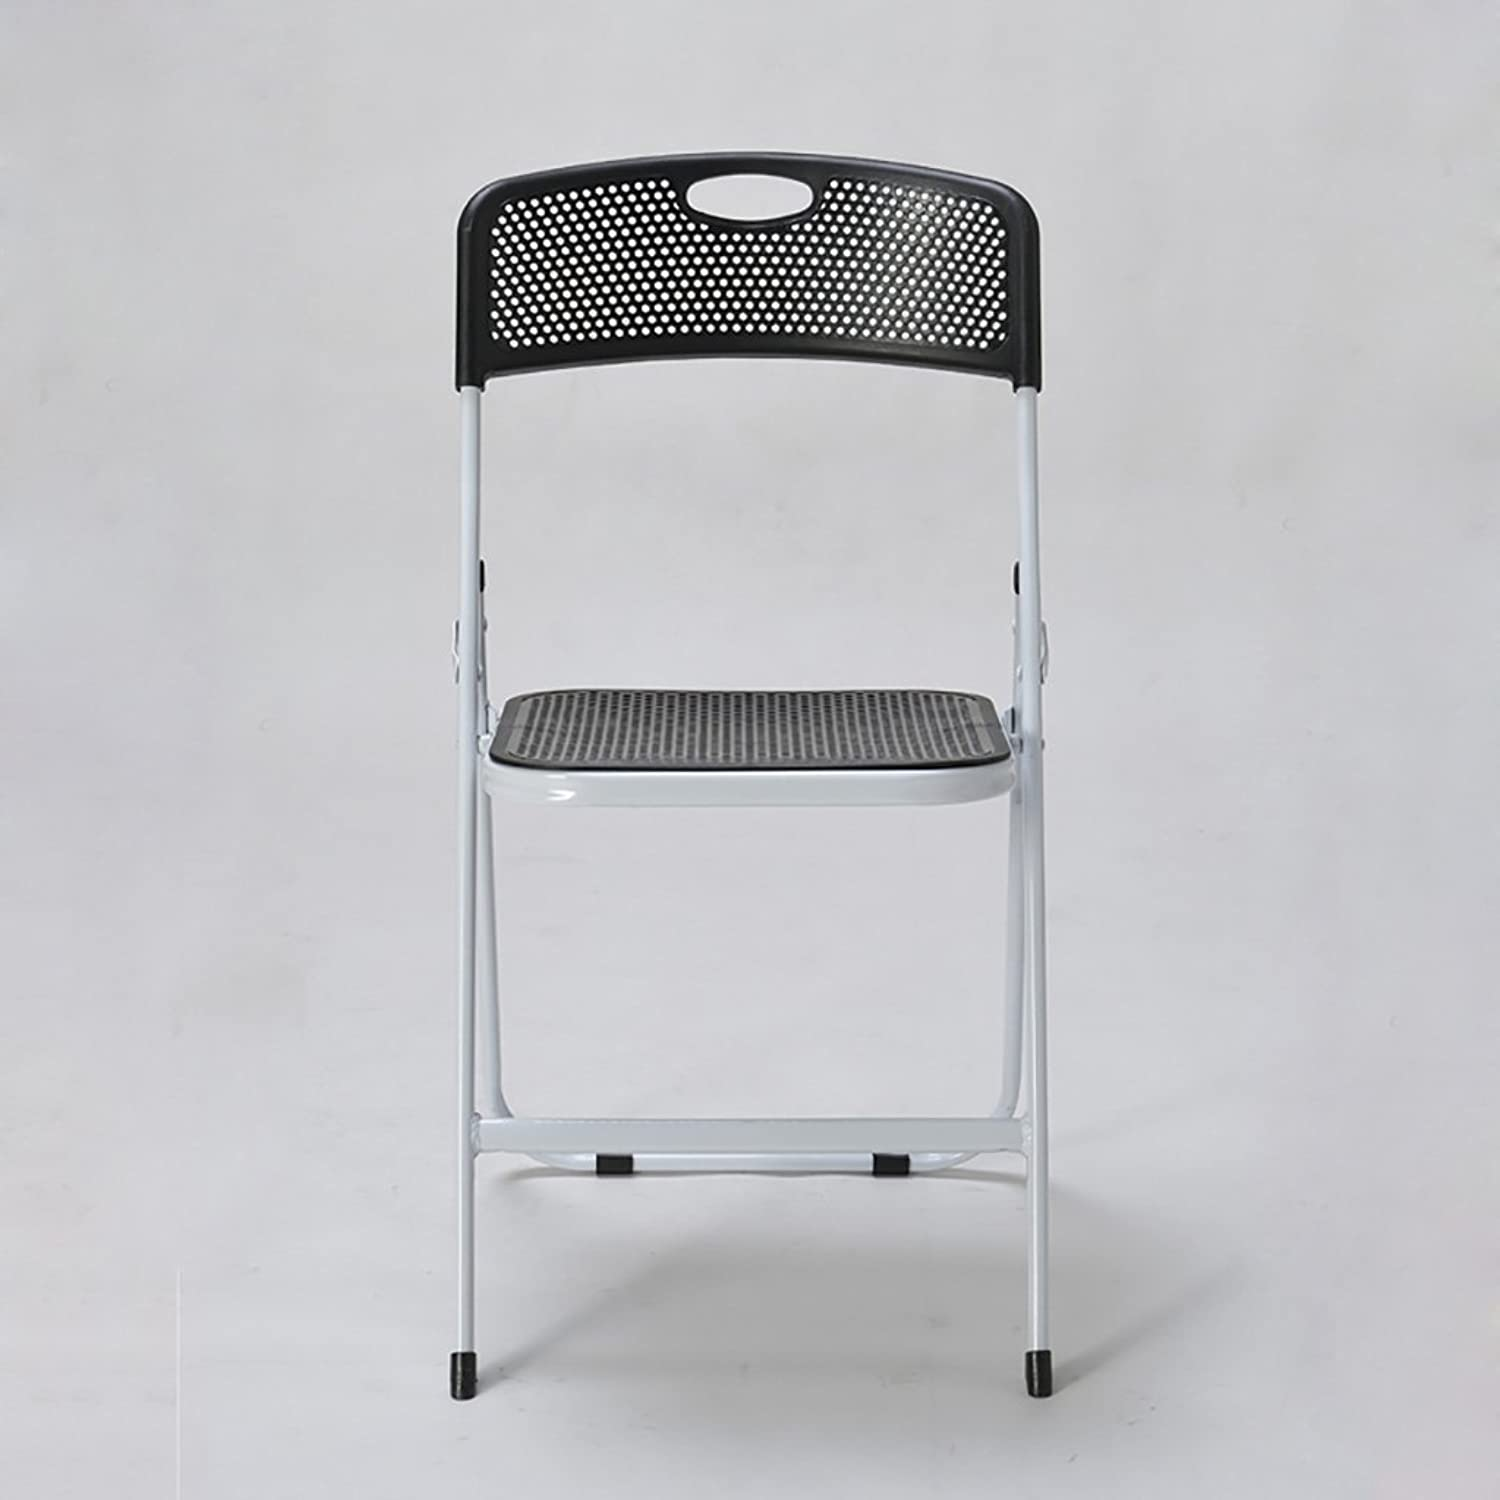 Chair Cellular Breathable Chair Plastic Folding Chair Staff Chair Training Chair Conference Chair (color   Black)